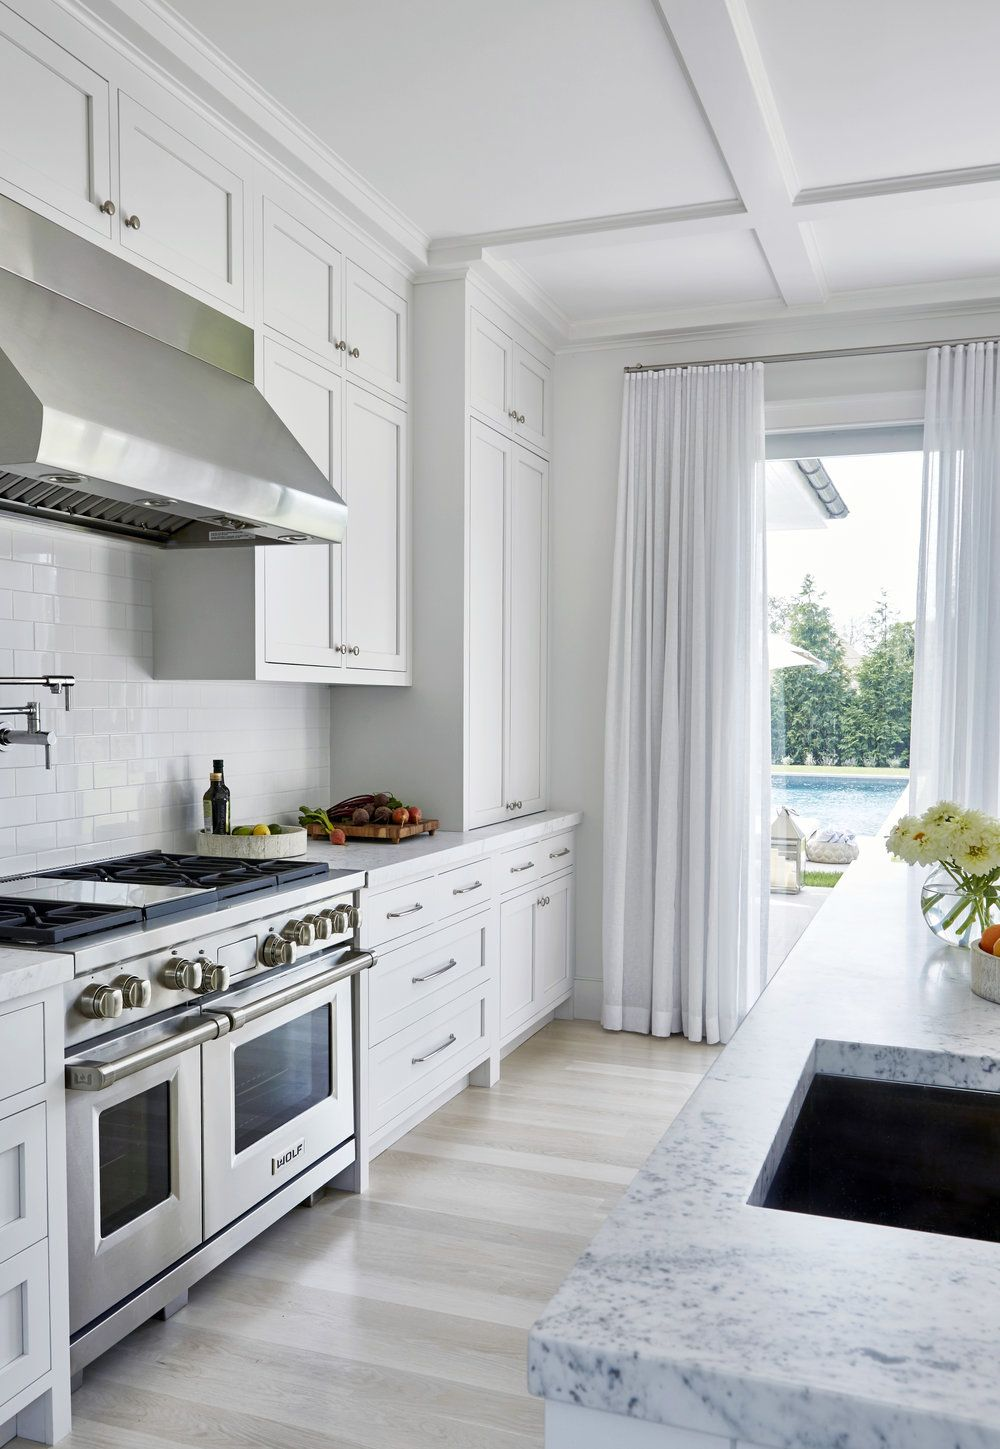 wall treatments in the kitchen to elevate the space. amagansett